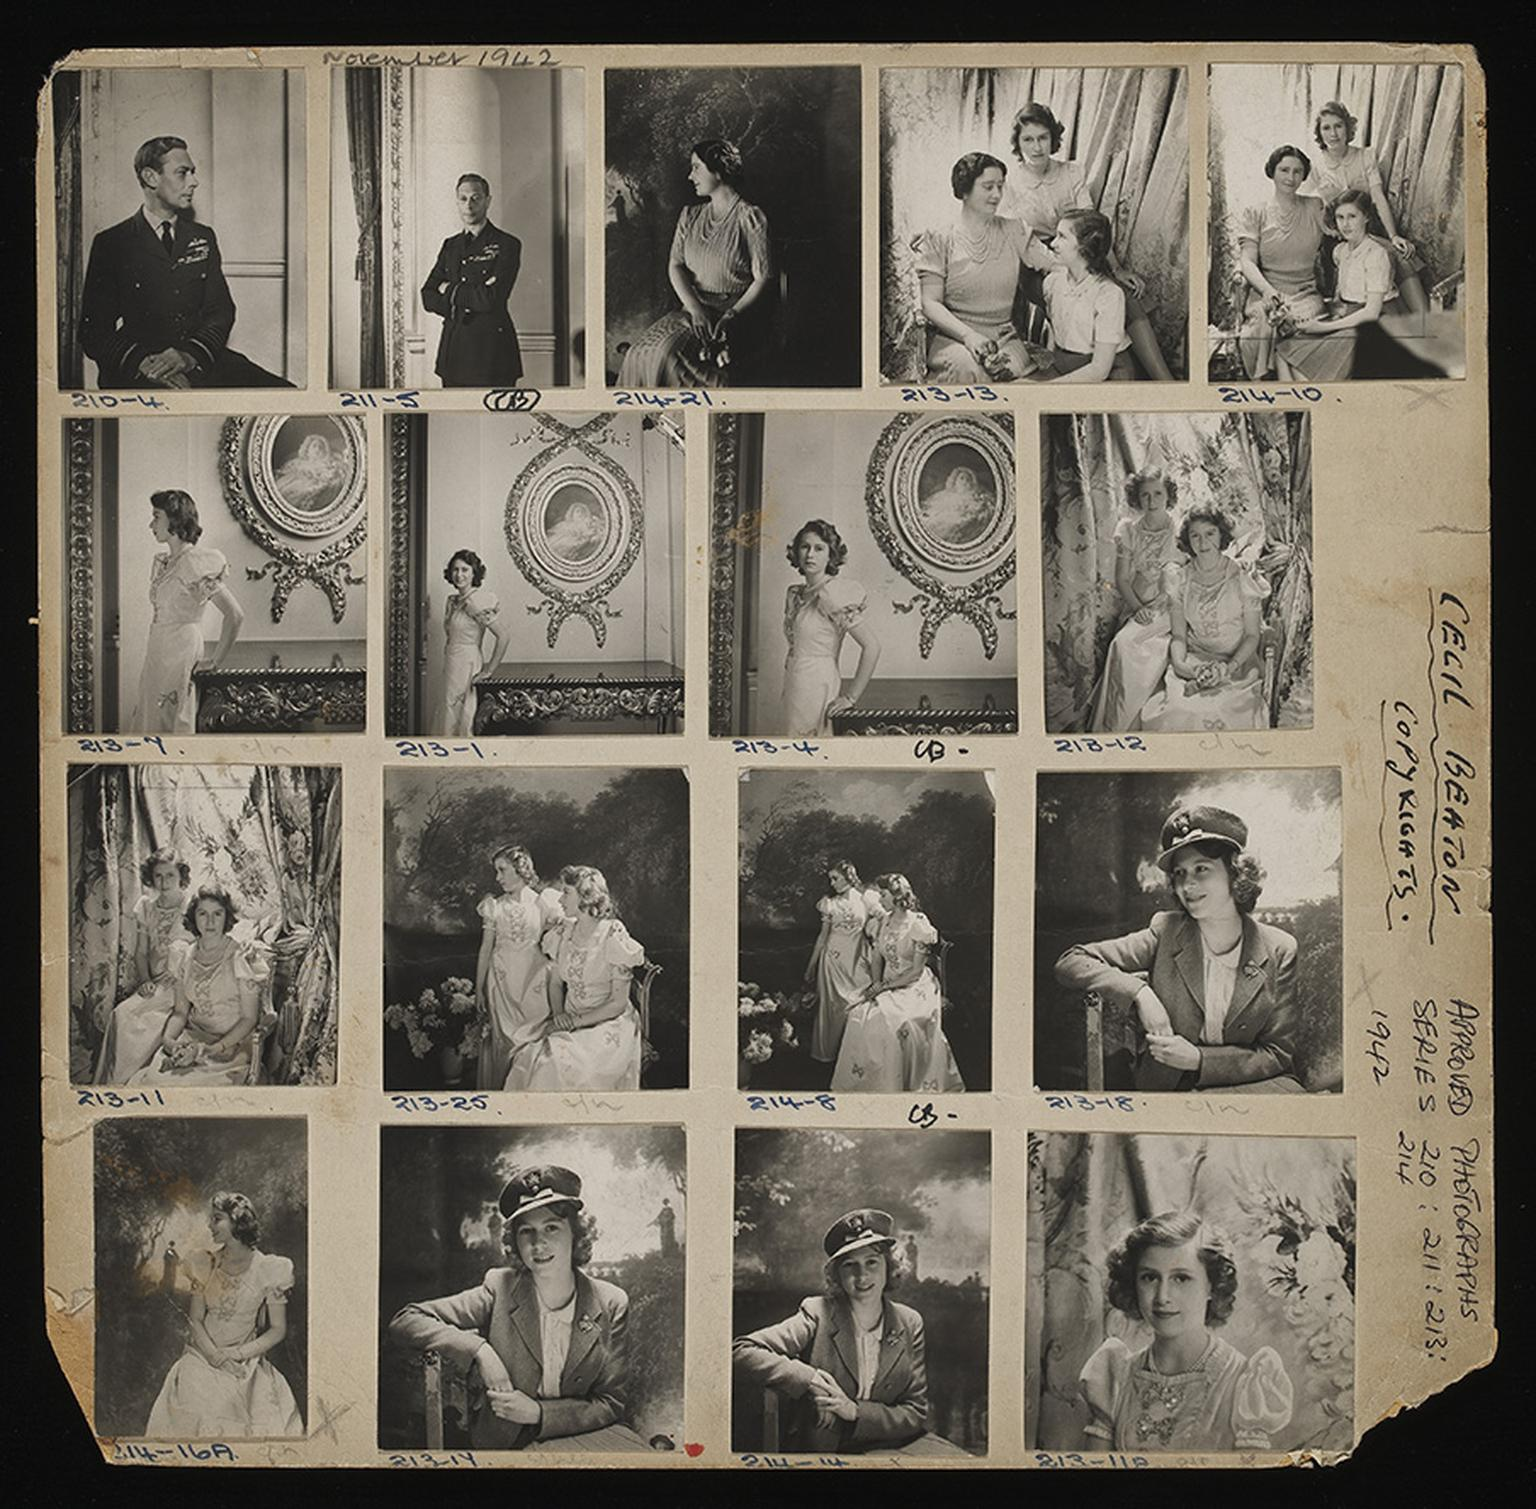 Contact sheet of The Royal Family, Buckingham Palace  Artist: Cecil Beaton  Date: October 1942  Credit line: copyright V&A images